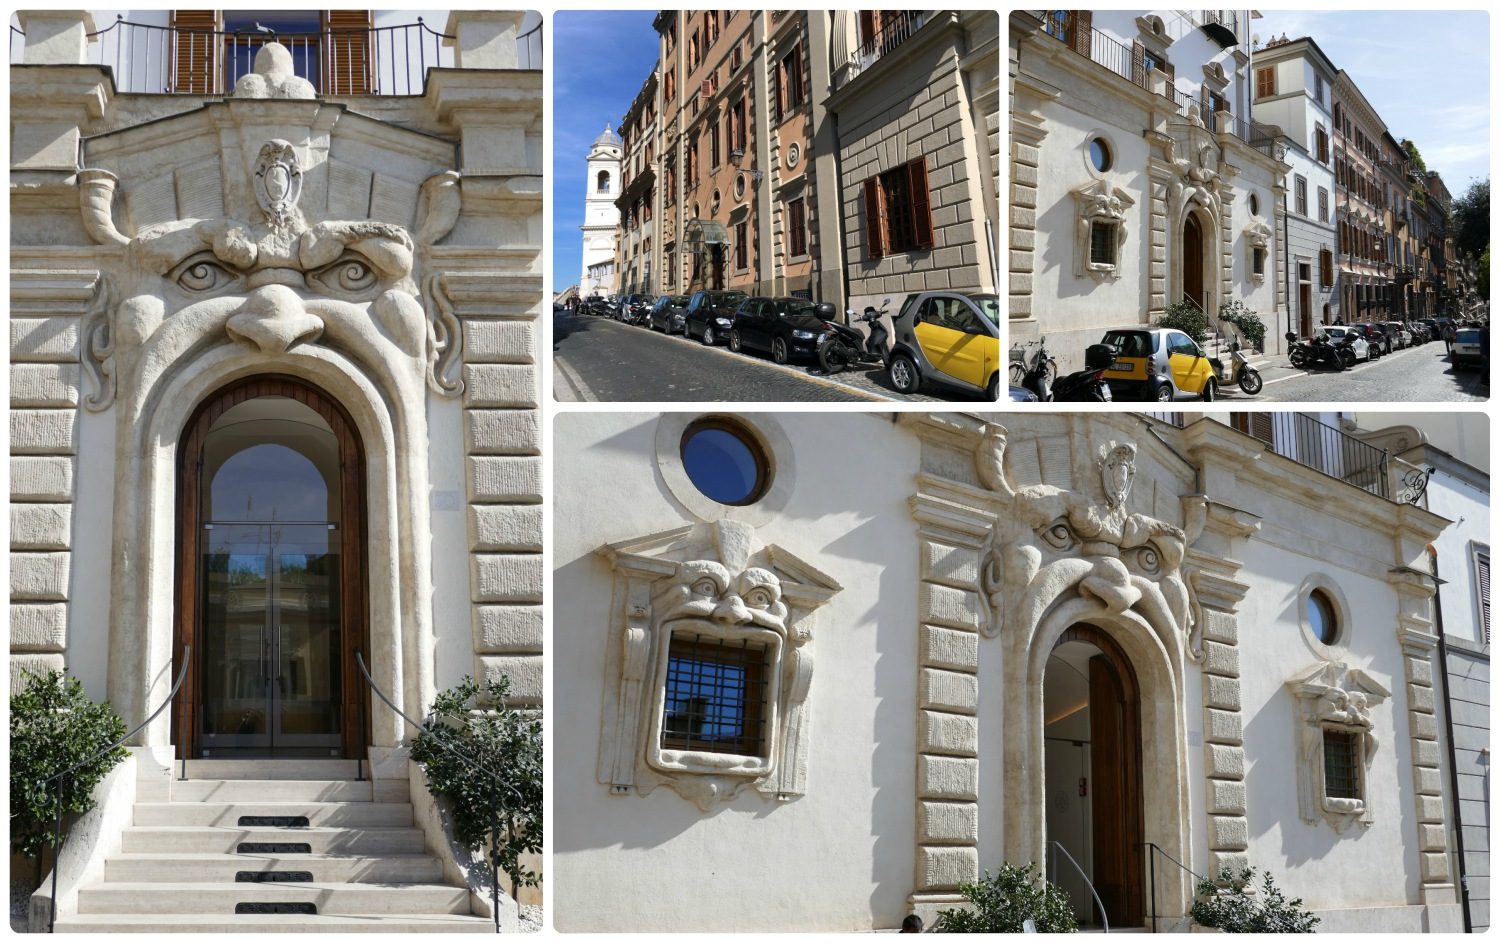 Monster House (Palazzetto Zuccari) in Rome, Italy.